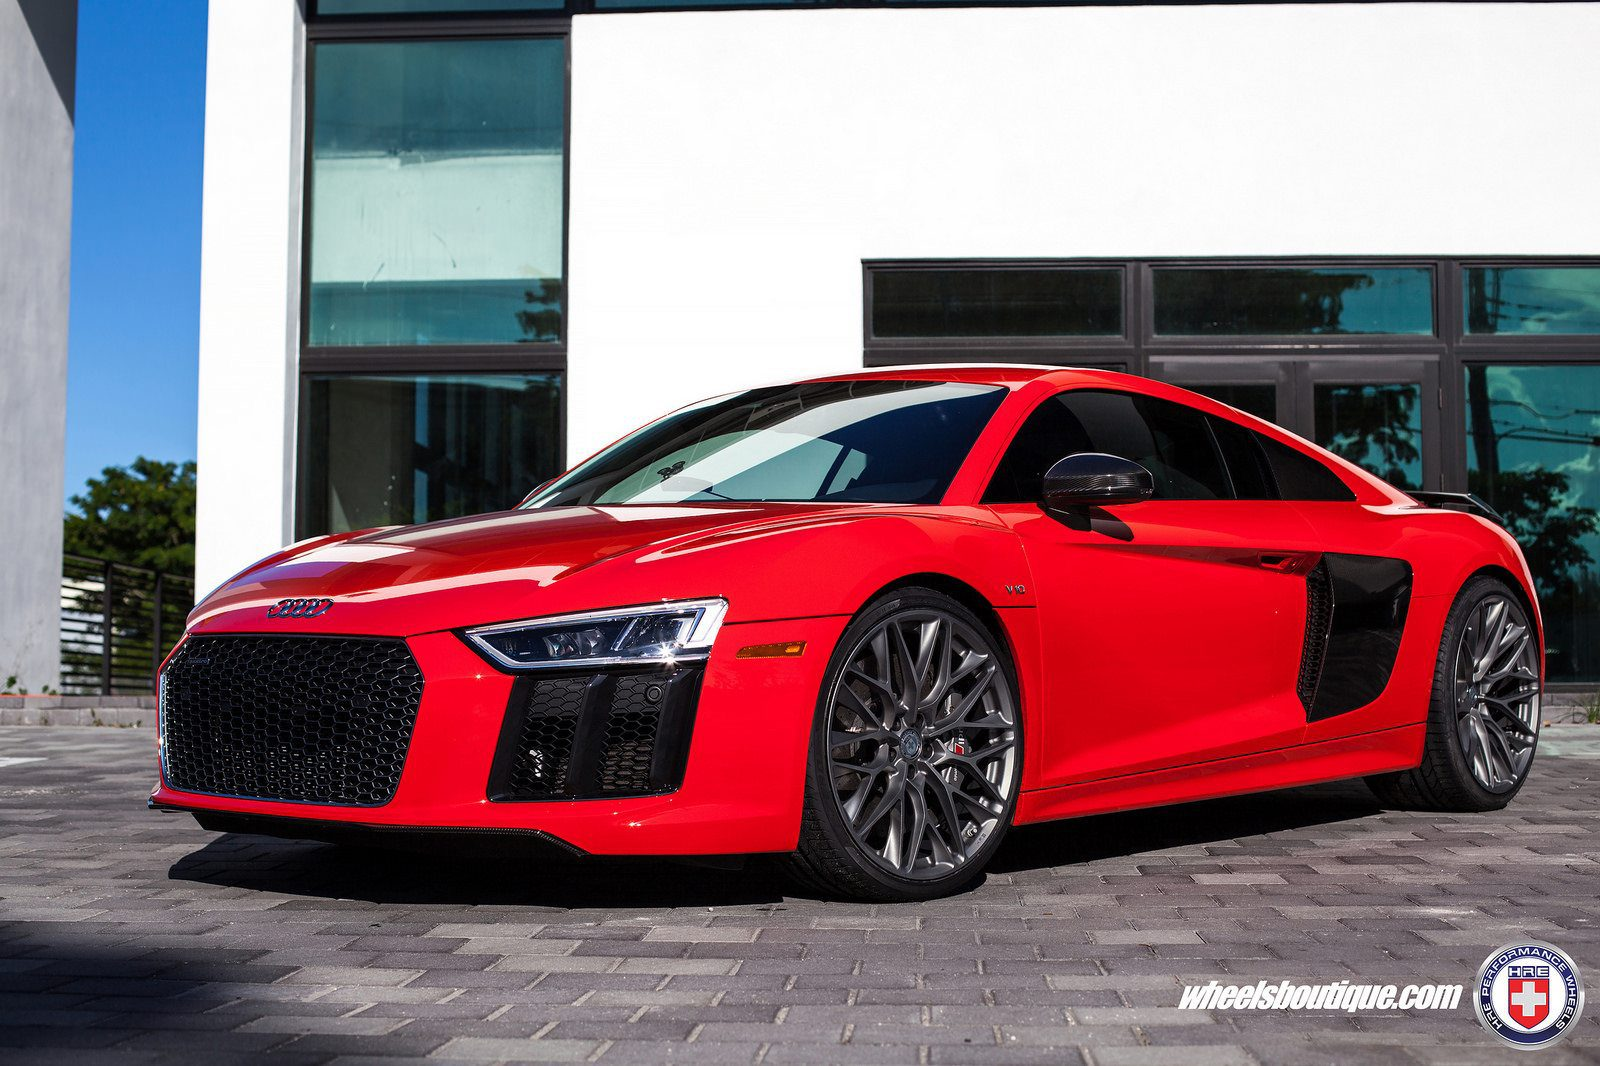 Gorgeous Red Audi R With HRE Wheels By Wheels Boutique My Car Portal - Red audi r8